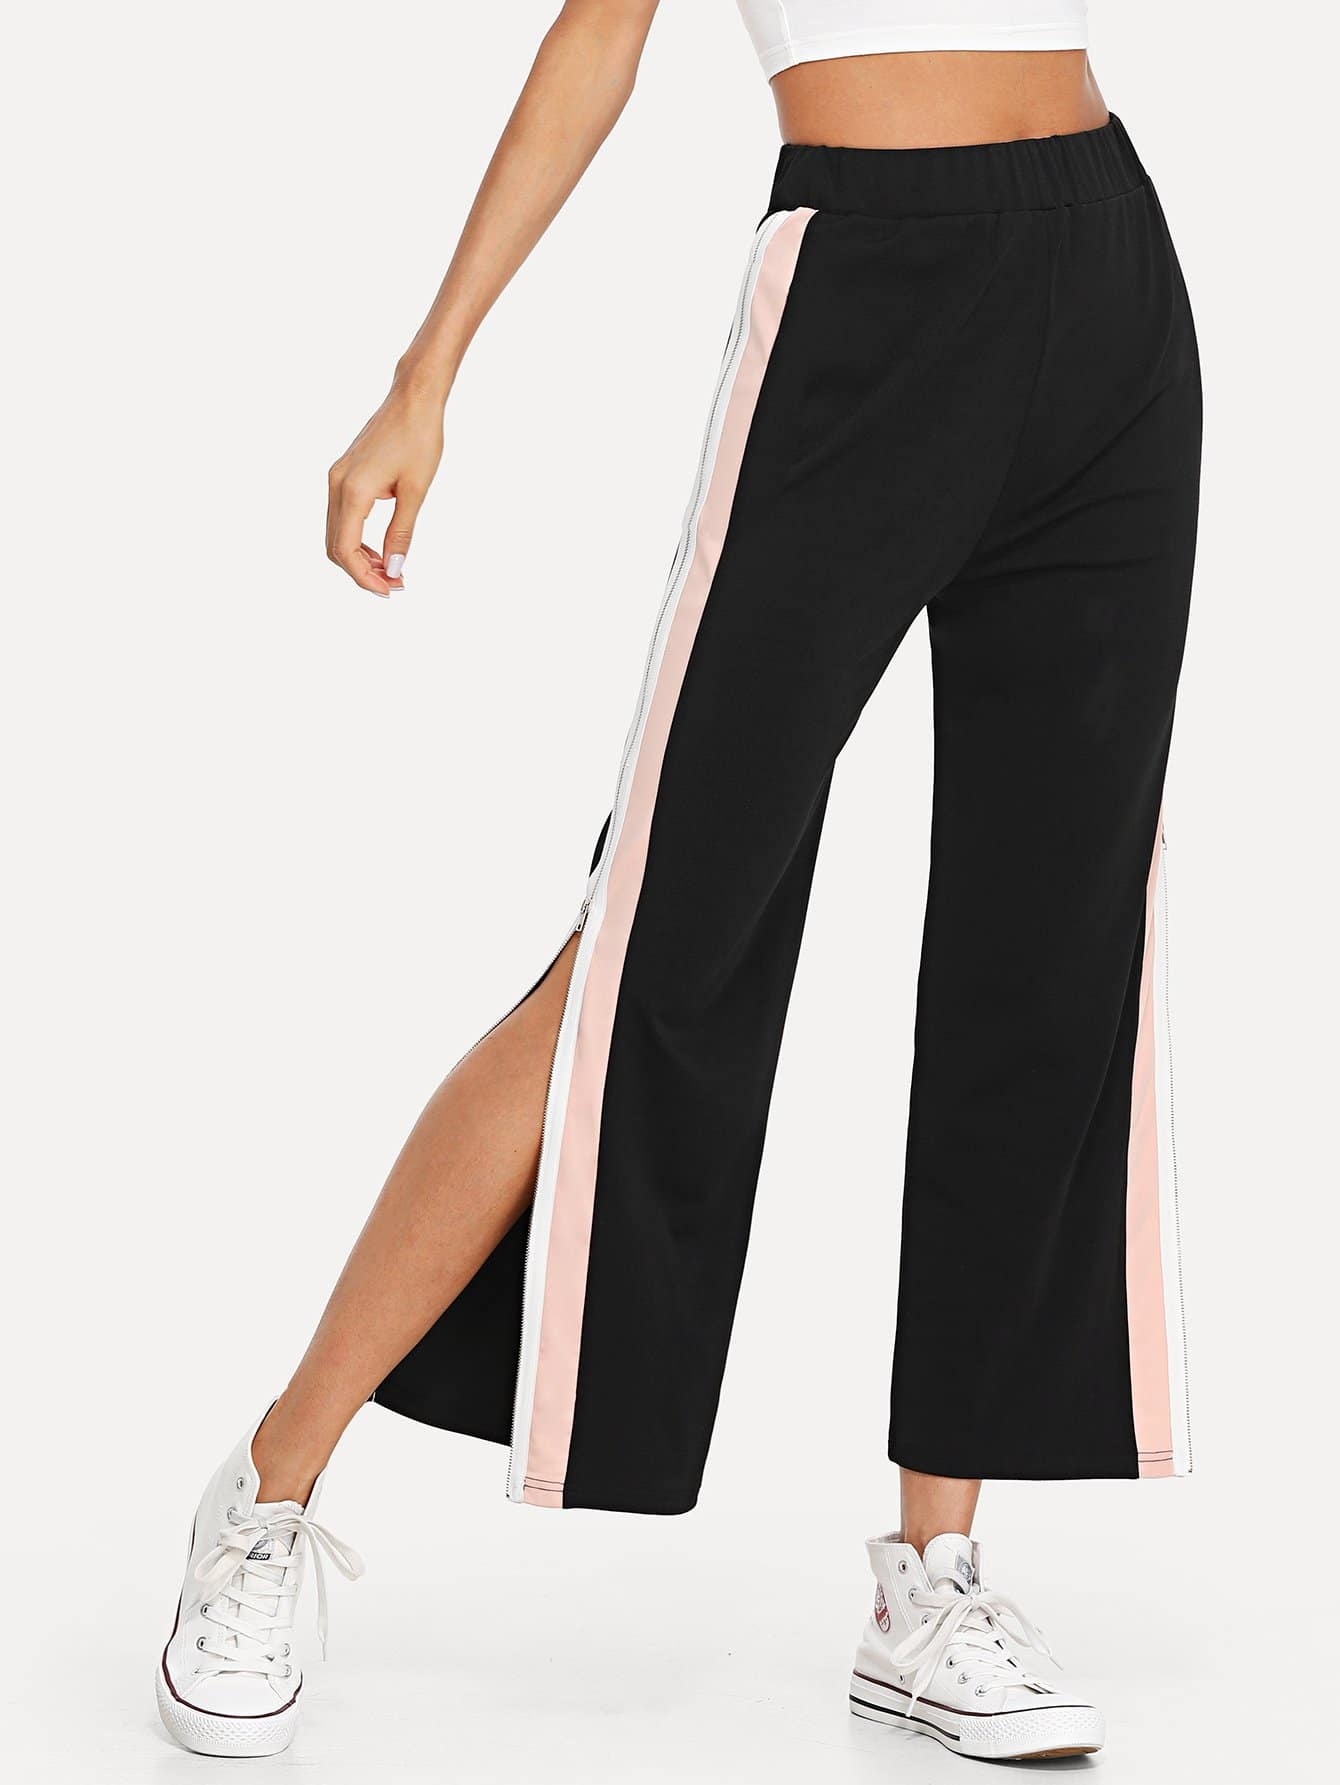 Contrast Striped Side Split Pants jane eyre level 5 cd